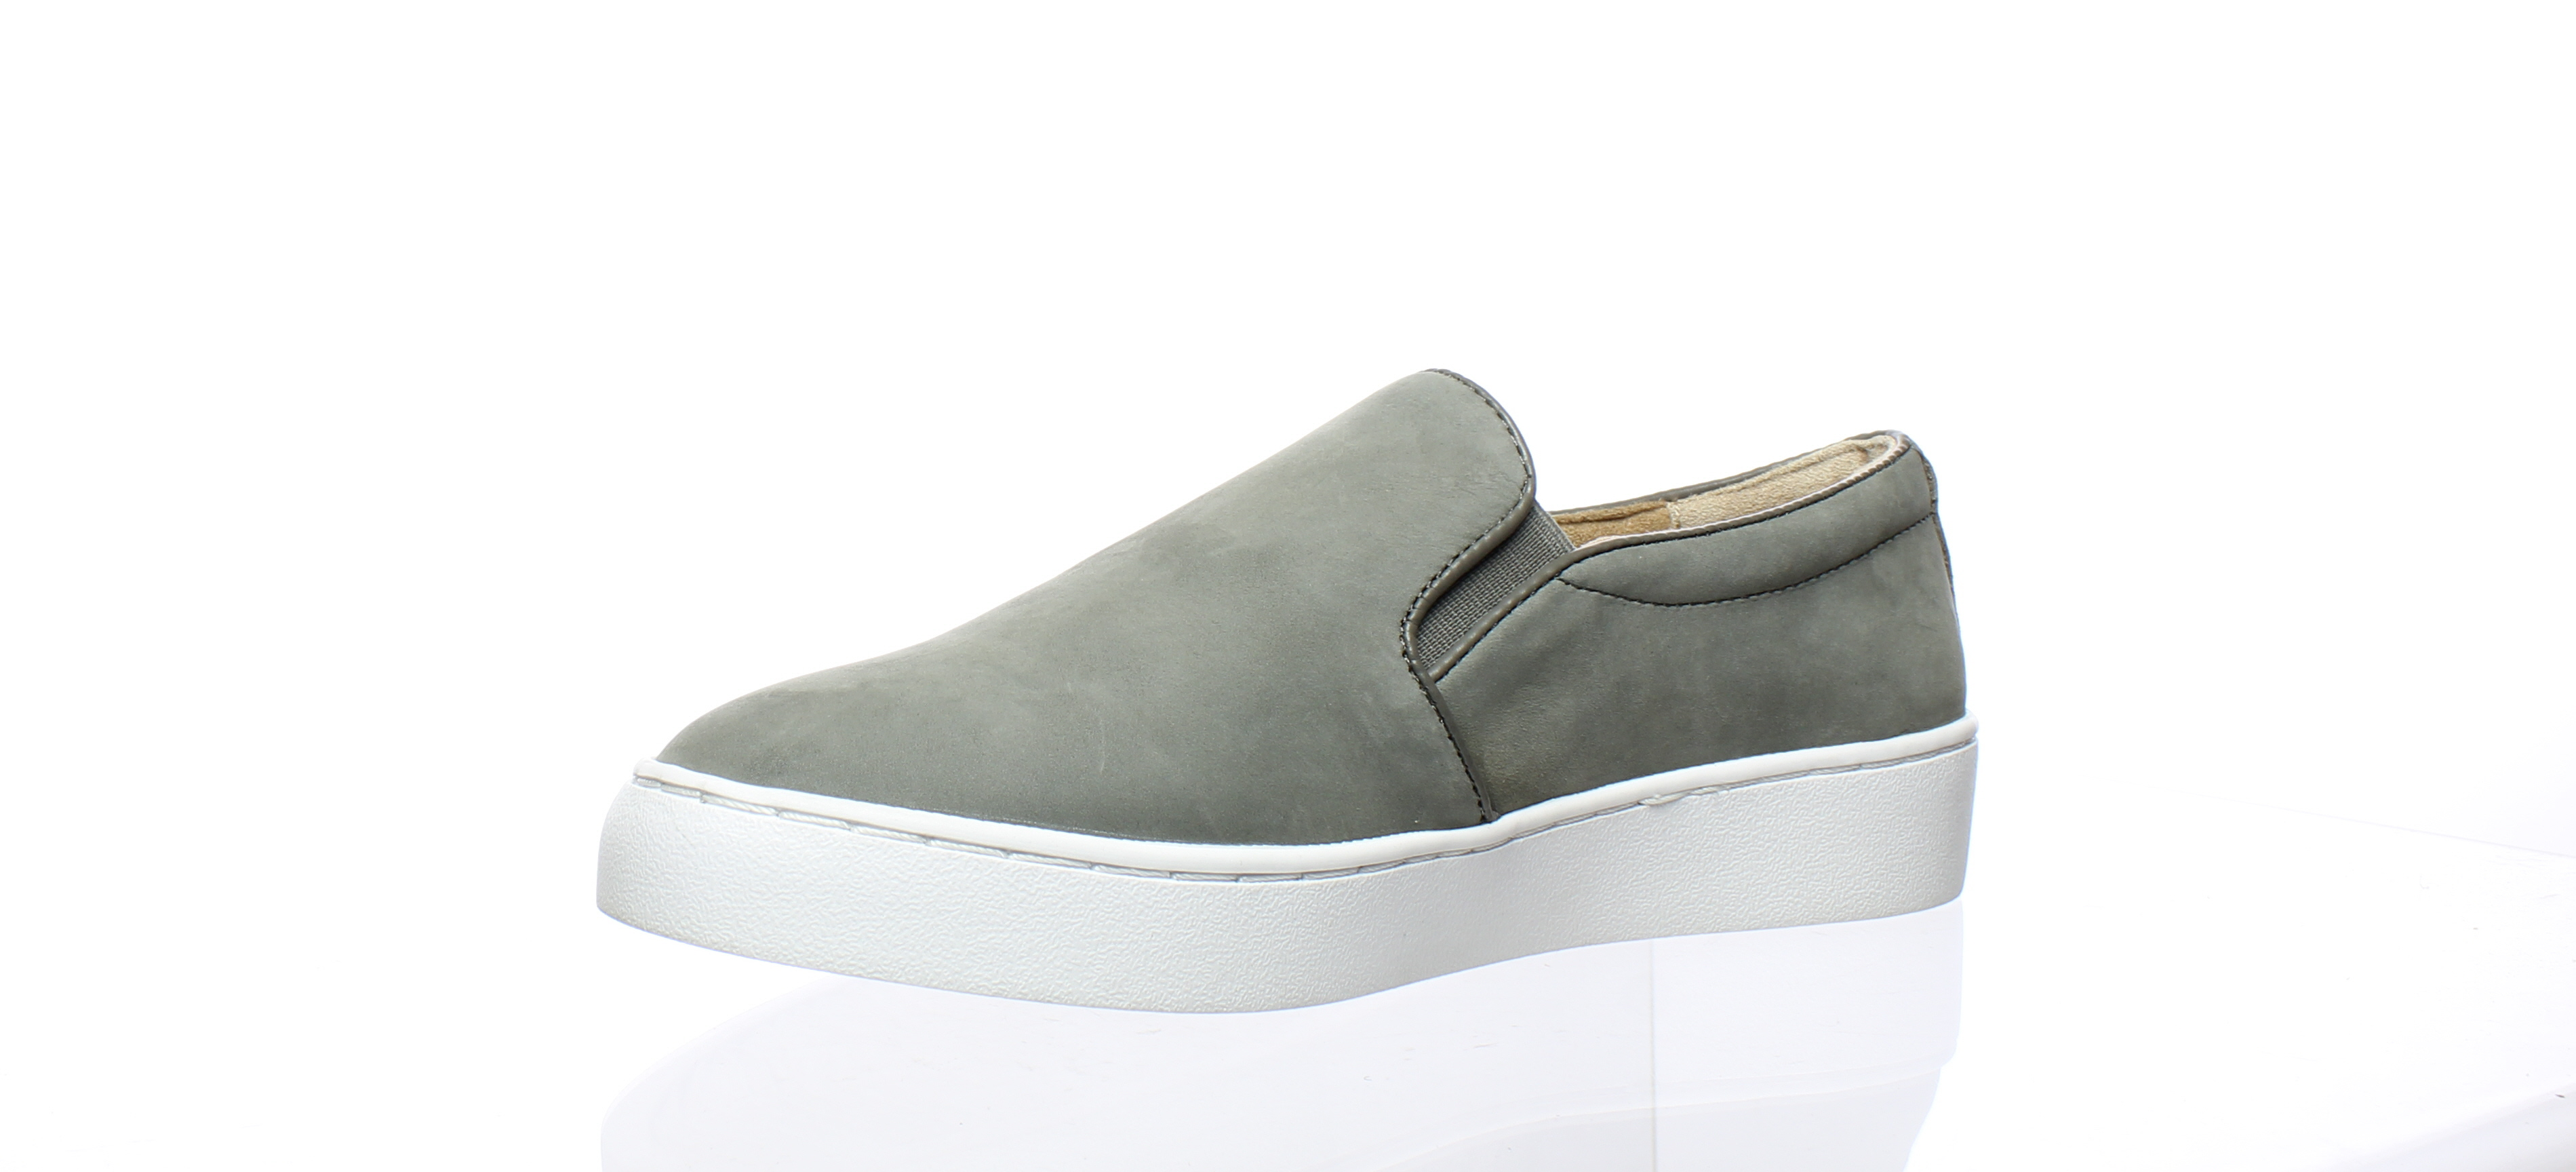 Vionic-Womens-Splendid-Midi-Leather-Comfort-Casual-Flats thumbnail 15